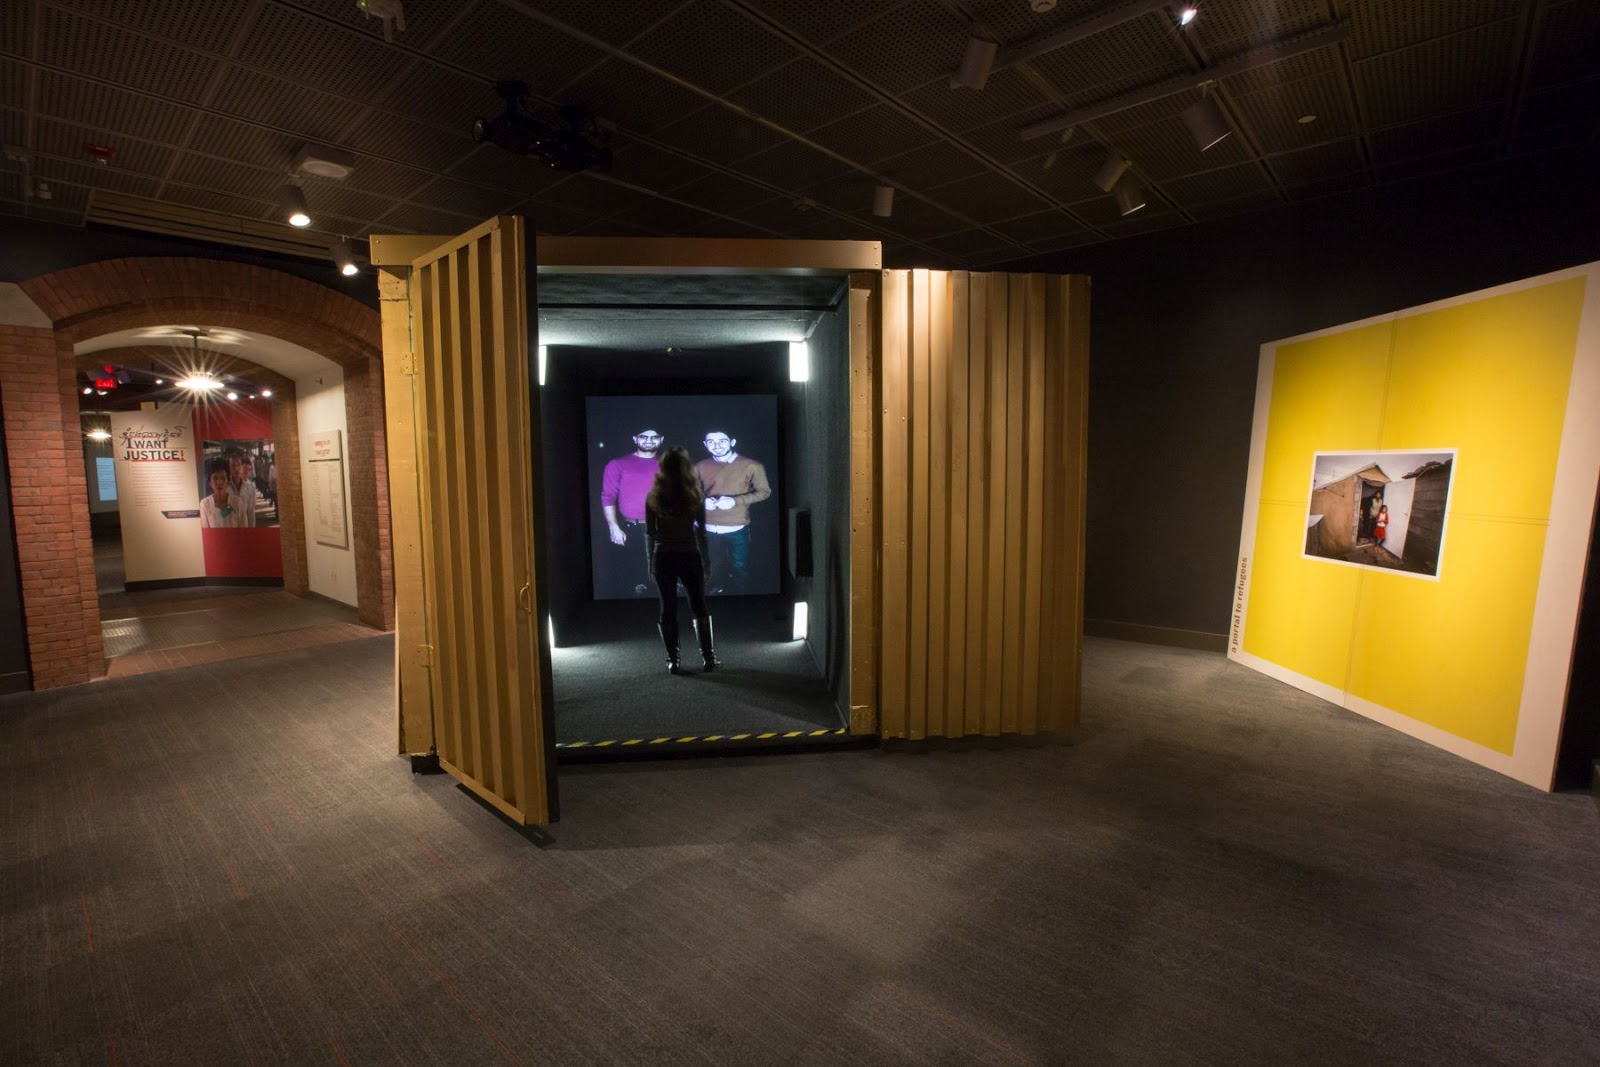 Image of a shipping container with a video portal at the far end of it and a person inside talking to two other people from the portal